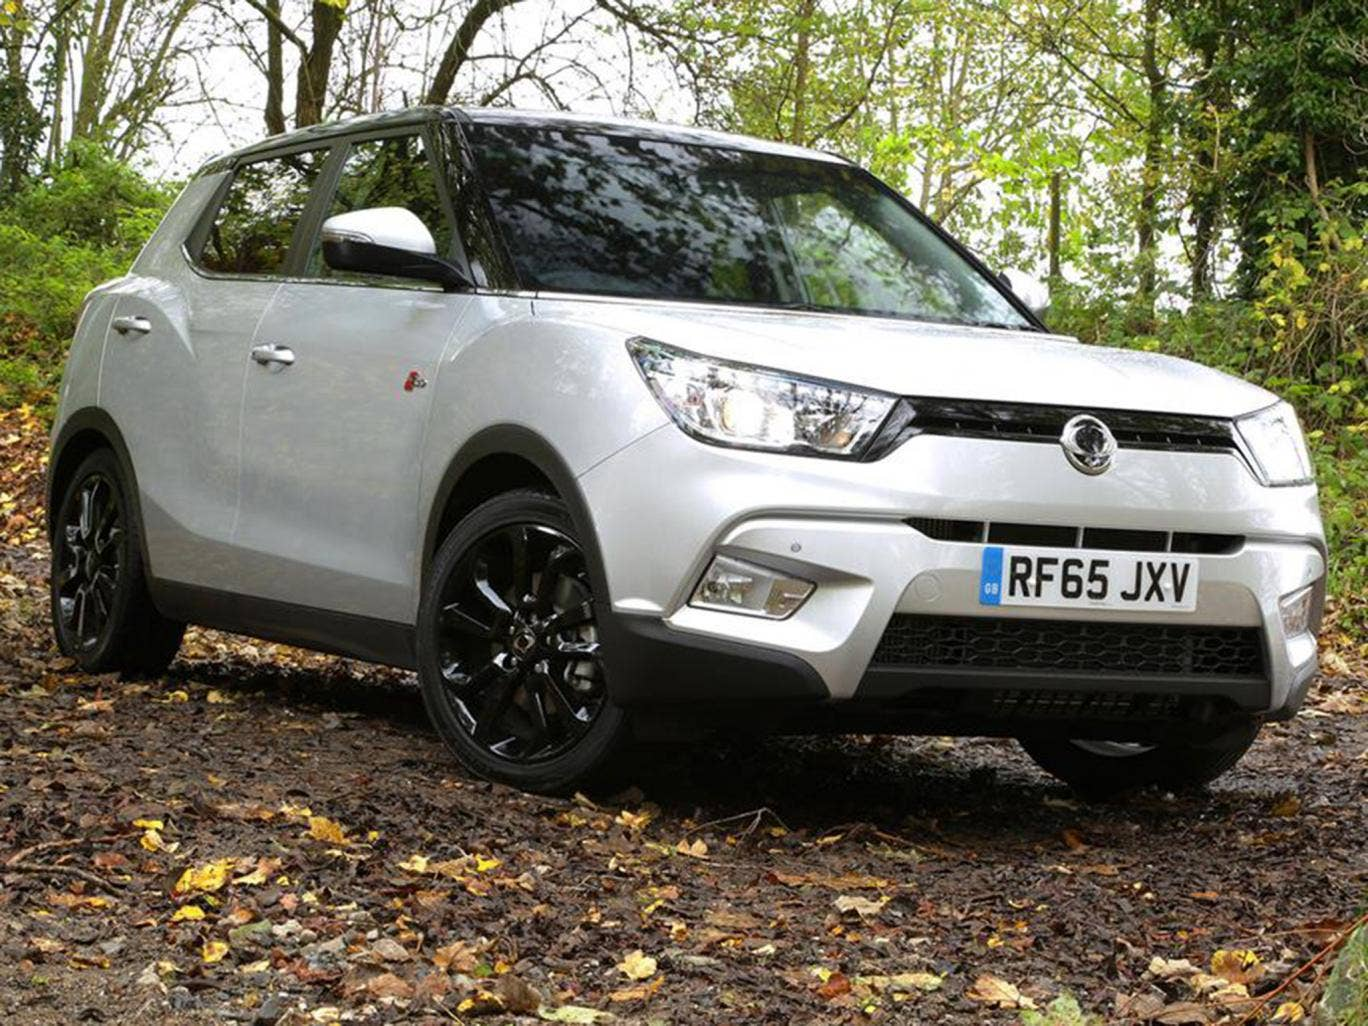 ssangyong tivoli 4x4 auto car review adding four wheel drive to the small yet roomy suv. Black Bedroom Furniture Sets. Home Design Ideas